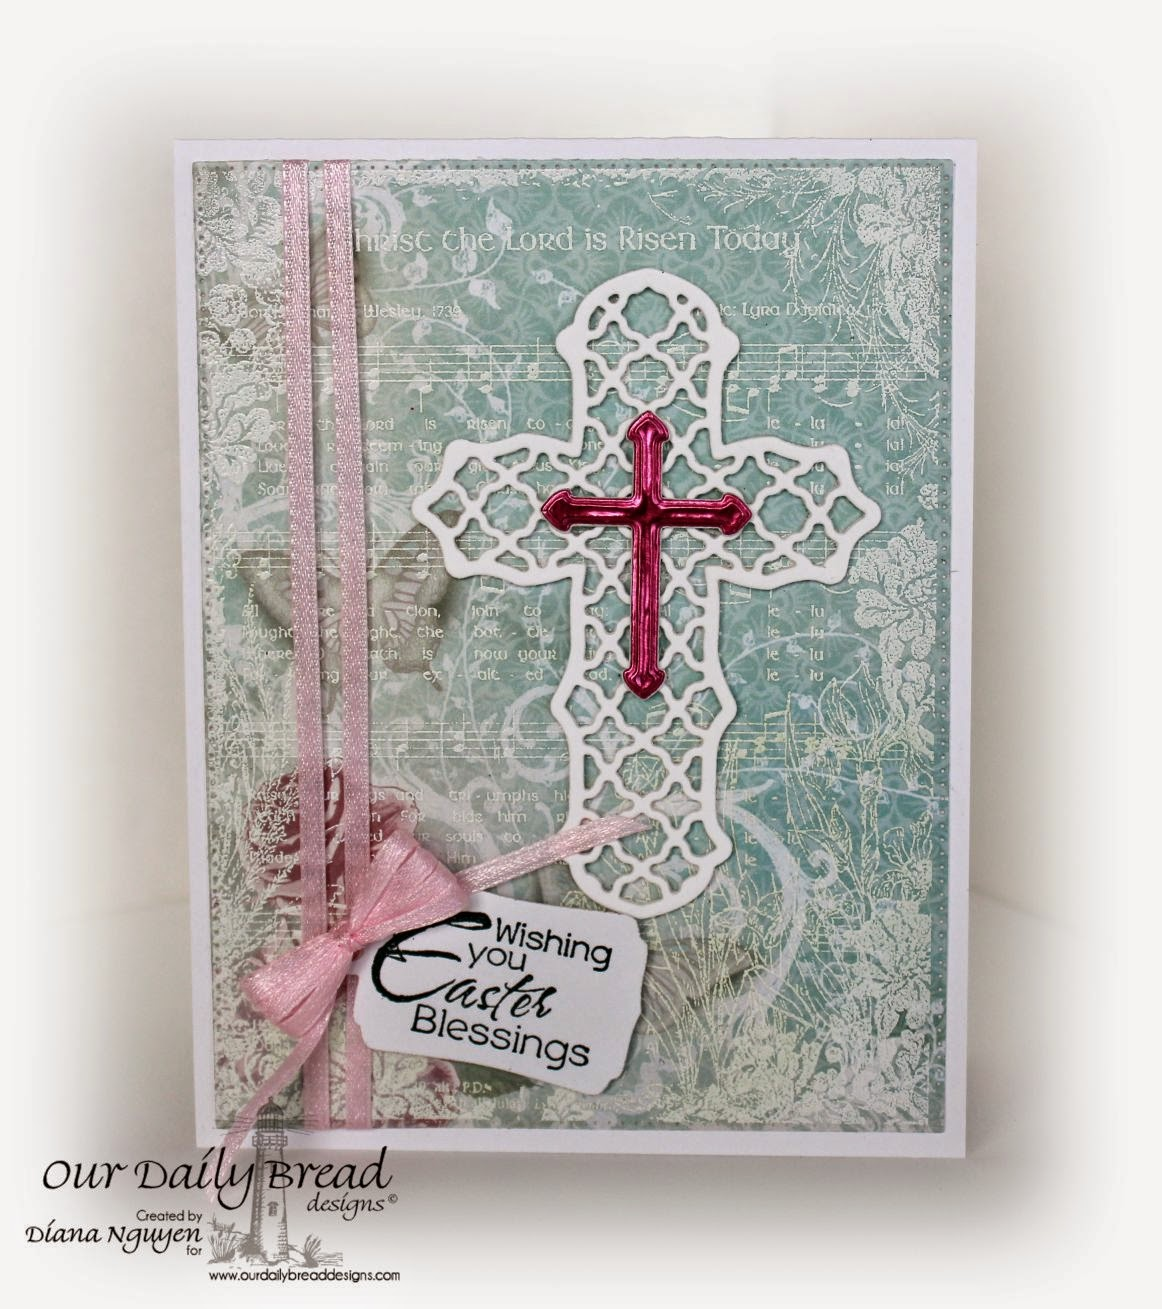 Our Daily Bread Designs, Earth's Gladdest Day, Christ the Lord Background, Flourished Star Pattern, Ornamental Crosses, Mini Tag Dies, Shabby Rose Paper Collection, Designed by Diana Nguyen